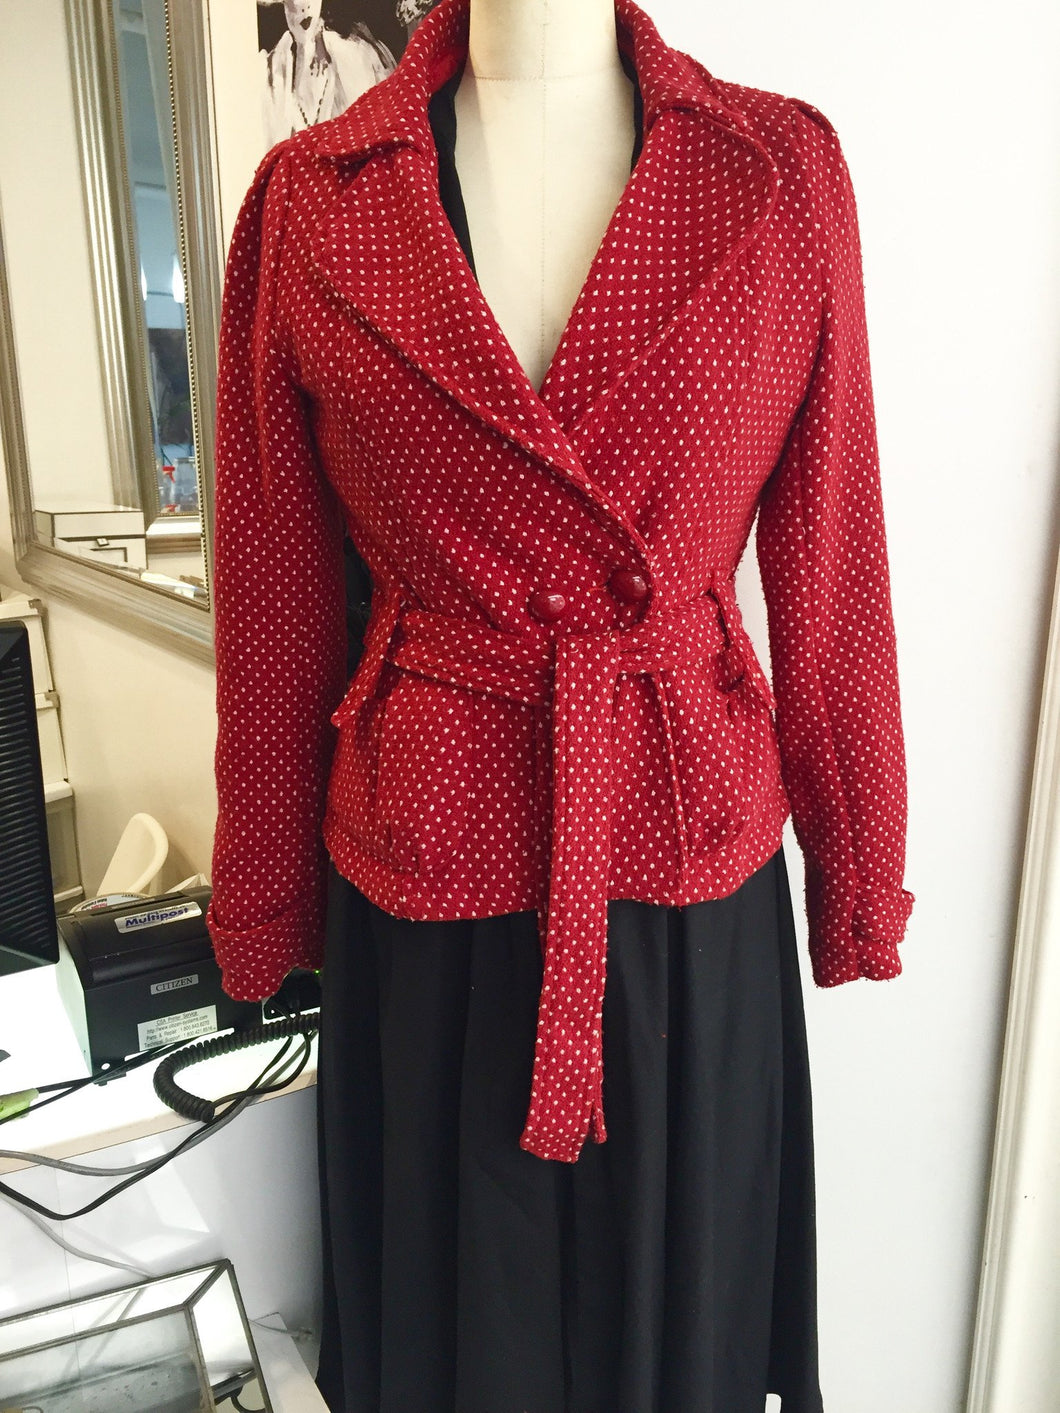 Red Poka Dot Fitted Blazer  Sz M - City Girl Barn Treasures